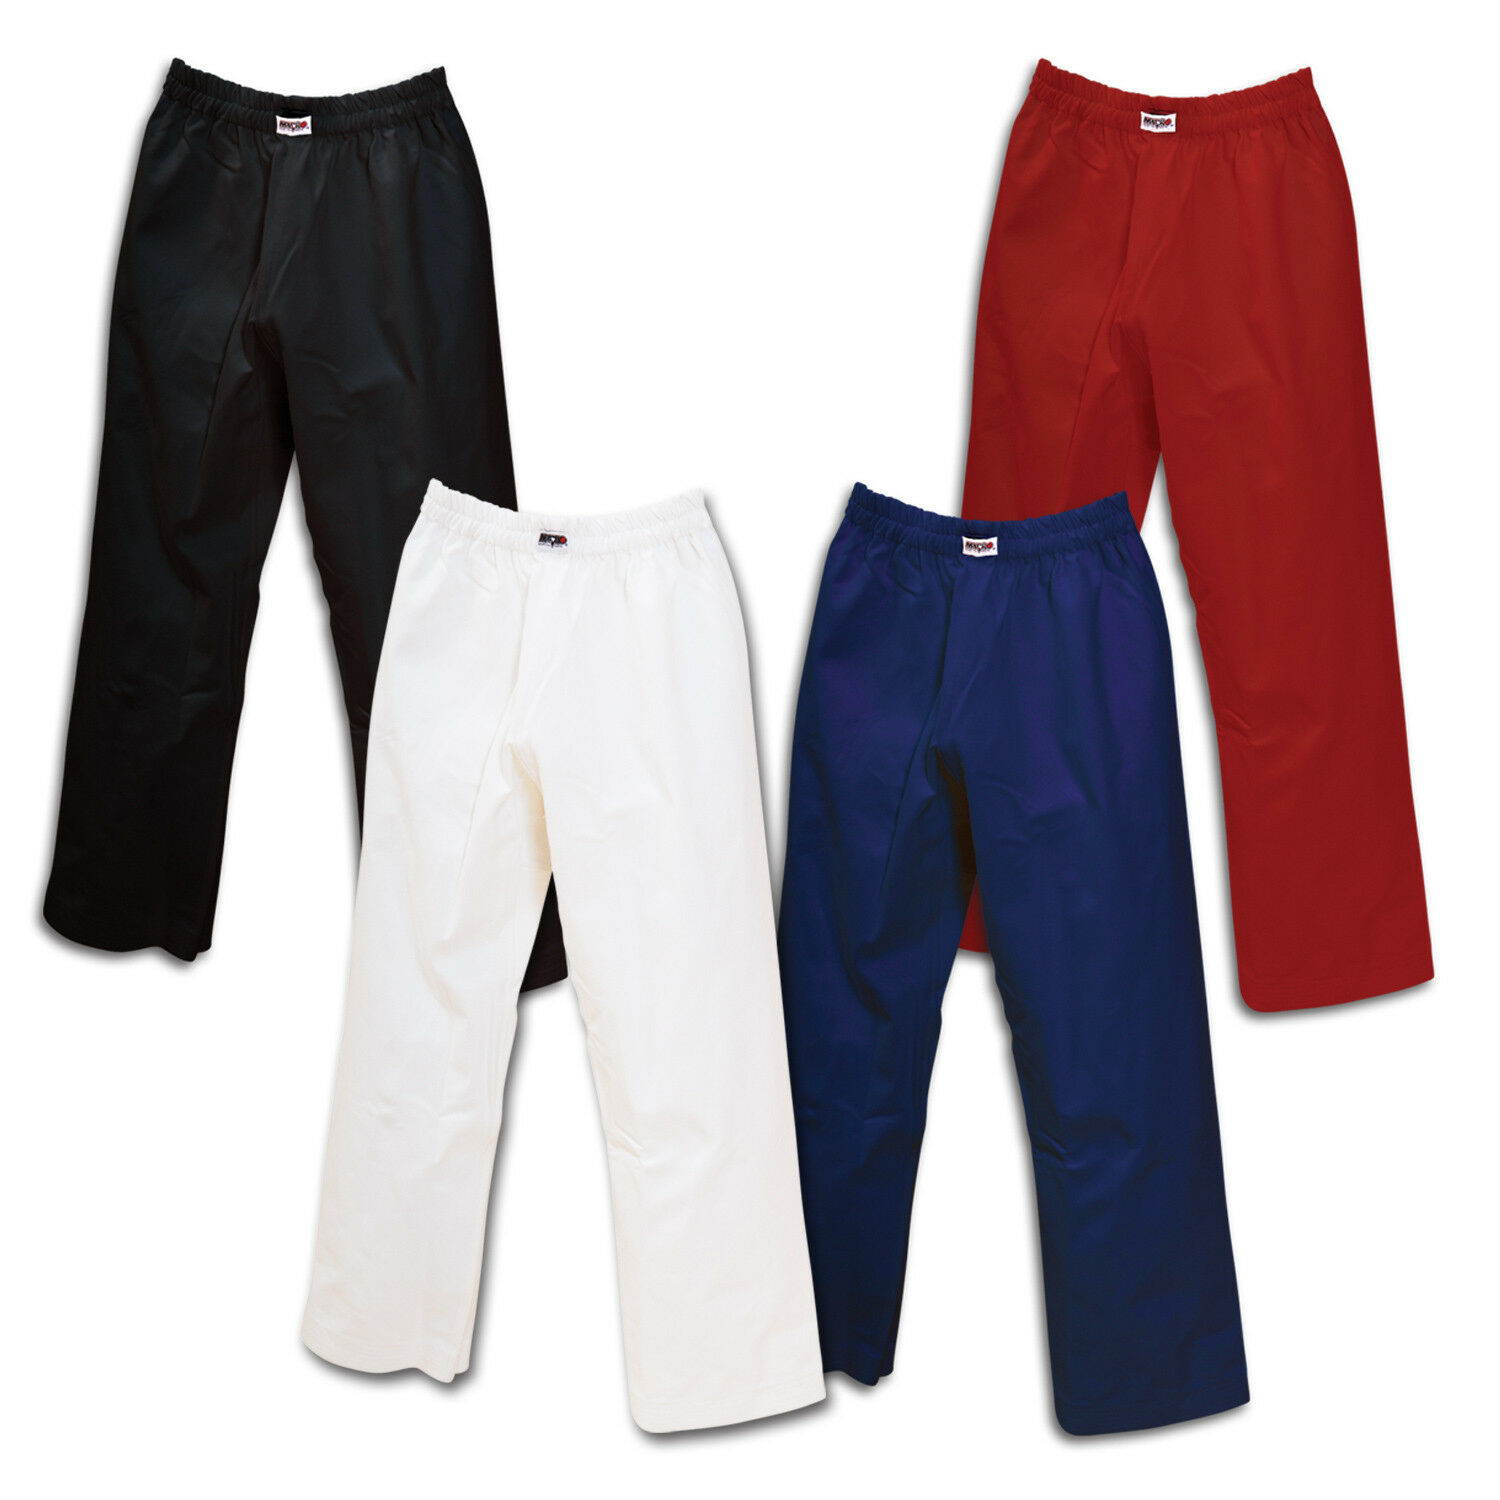 You searched for: karate pants! Etsy is the home to thousands of handmade, vintage, and one-of-a-kind products and gifts related to your search. No matter what you're looking for or where you are in the world, our global marketplace of sellers can help you find unique and affordable options. Let's get started!